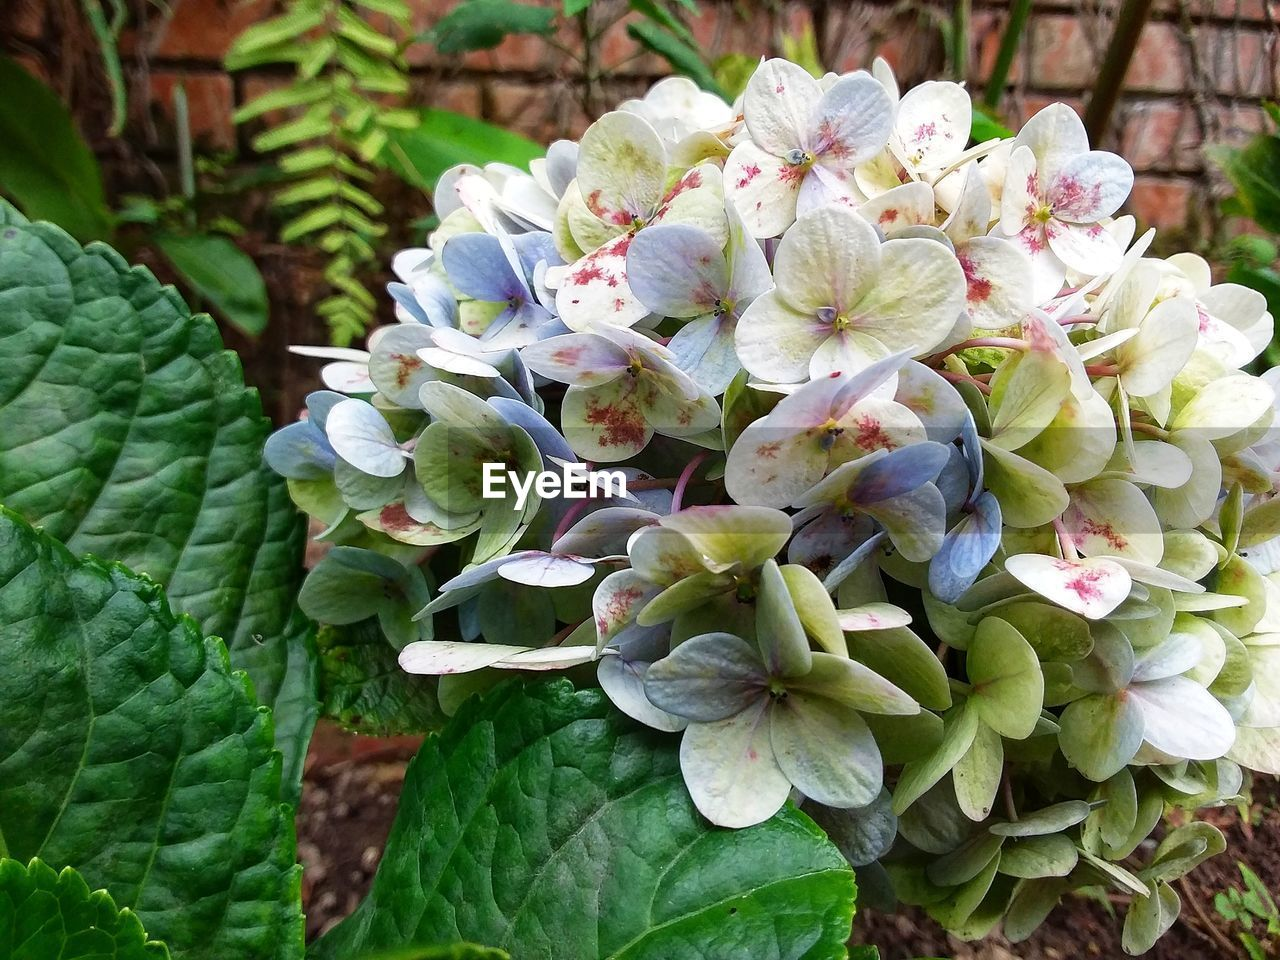 plant, beauty in nature, growth, flower, flowering plant, green color, leaf, plant part, freshness, vulnerability, close-up, nature, fragility, day, petal, inflorescence, no people, hydrangea, flower head, focus on foreground, outdoors, springtime, bunch of flowers